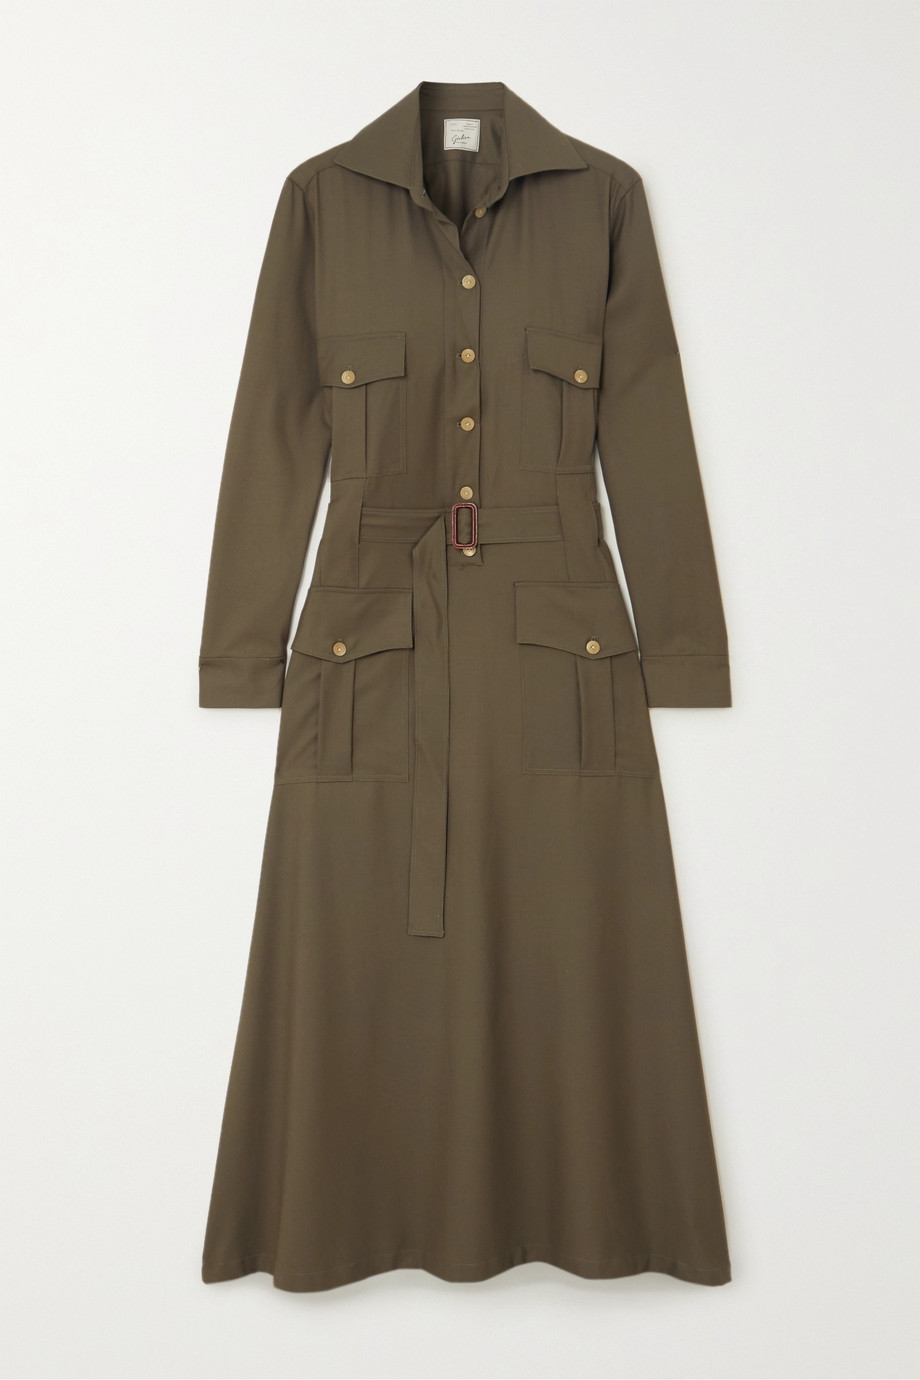 Giuliva Heritage + NET SUSTAIN + Space for Giants The Felicity belted shirt dress